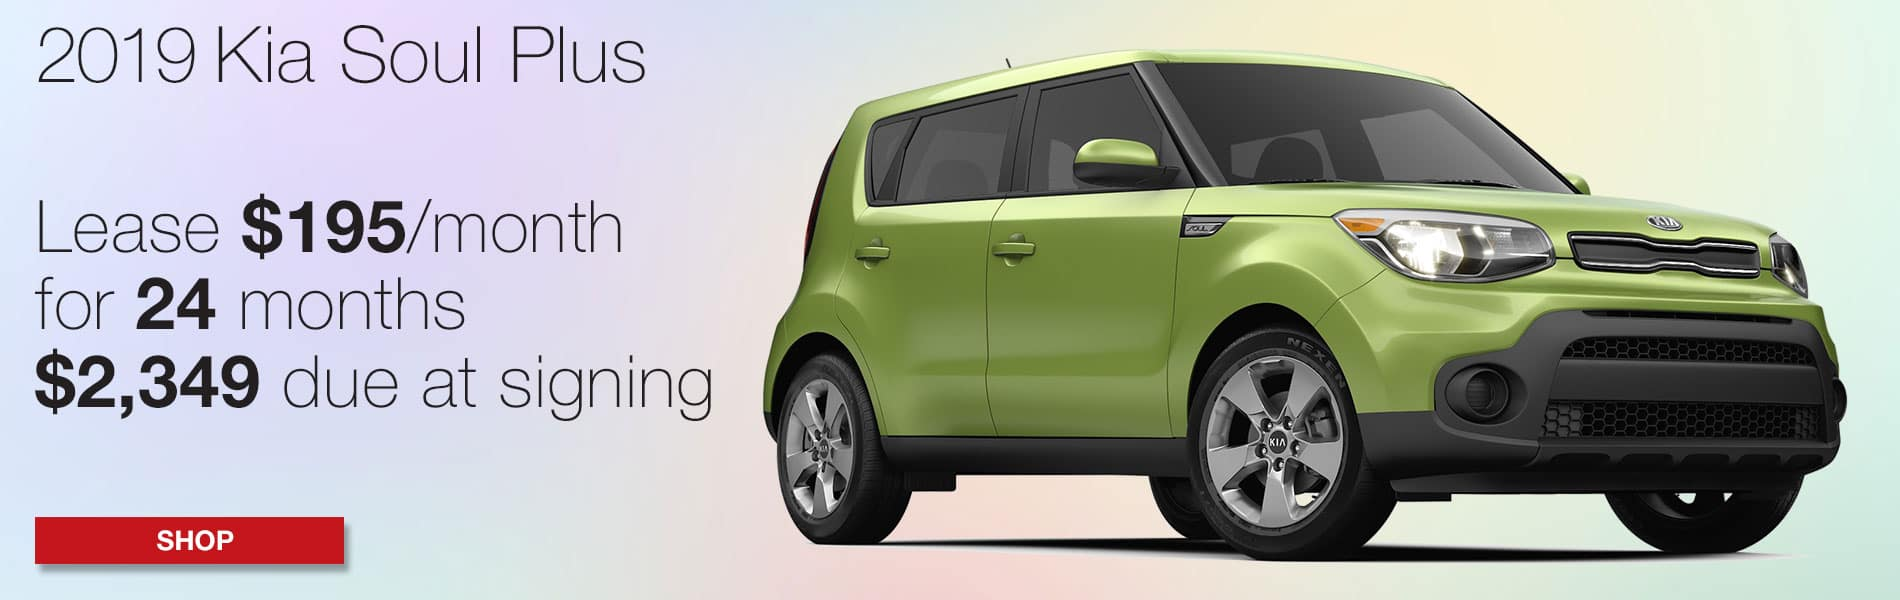 Lease a 2019 Kia Soul Plus for $195 per month with $2,349 due at signing